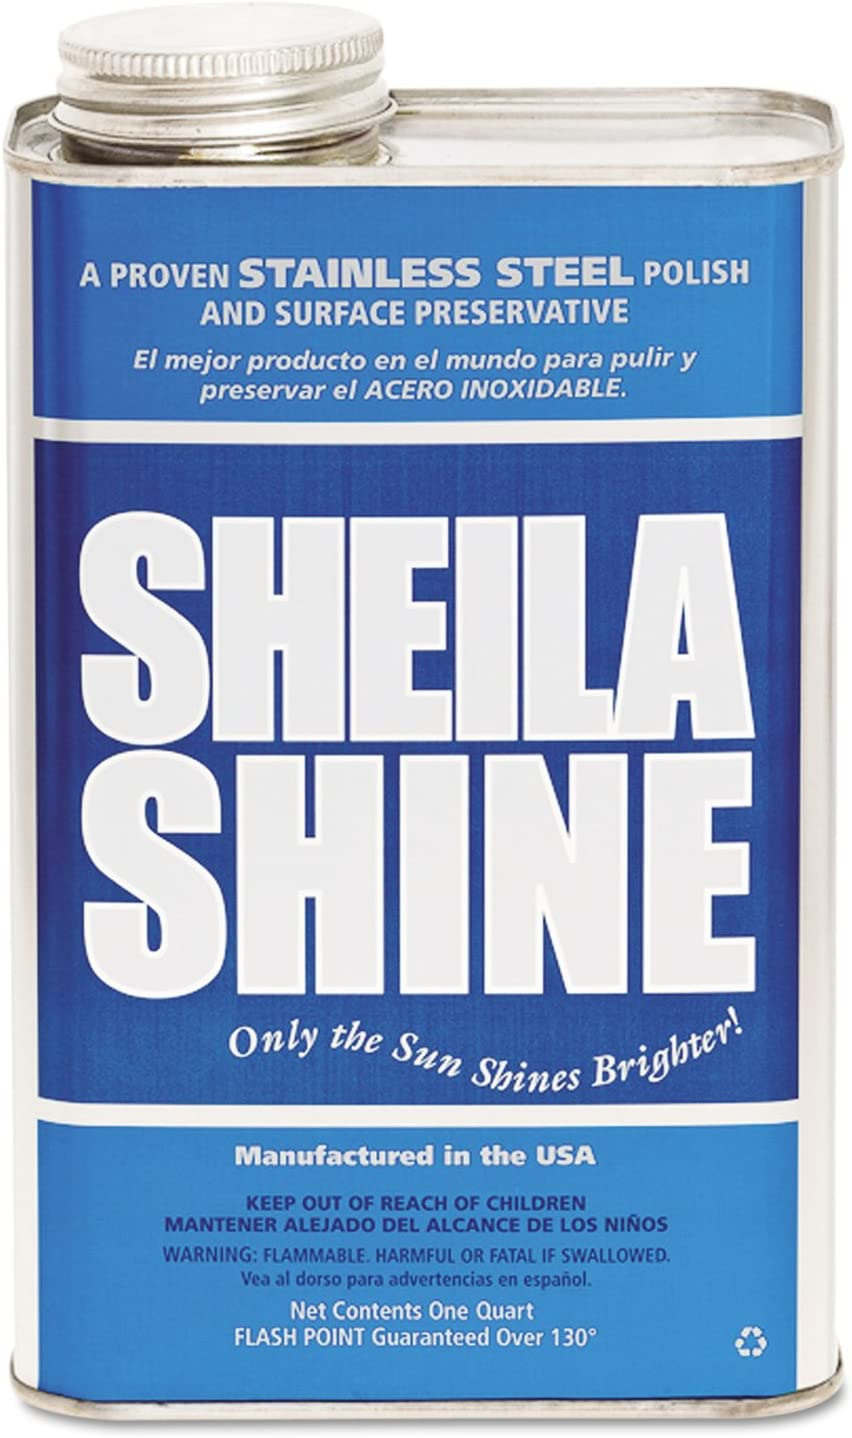 Stainless+Steel+Cleaner+%26+Polish%2c+1gal+Can%2c+4%2fCarton